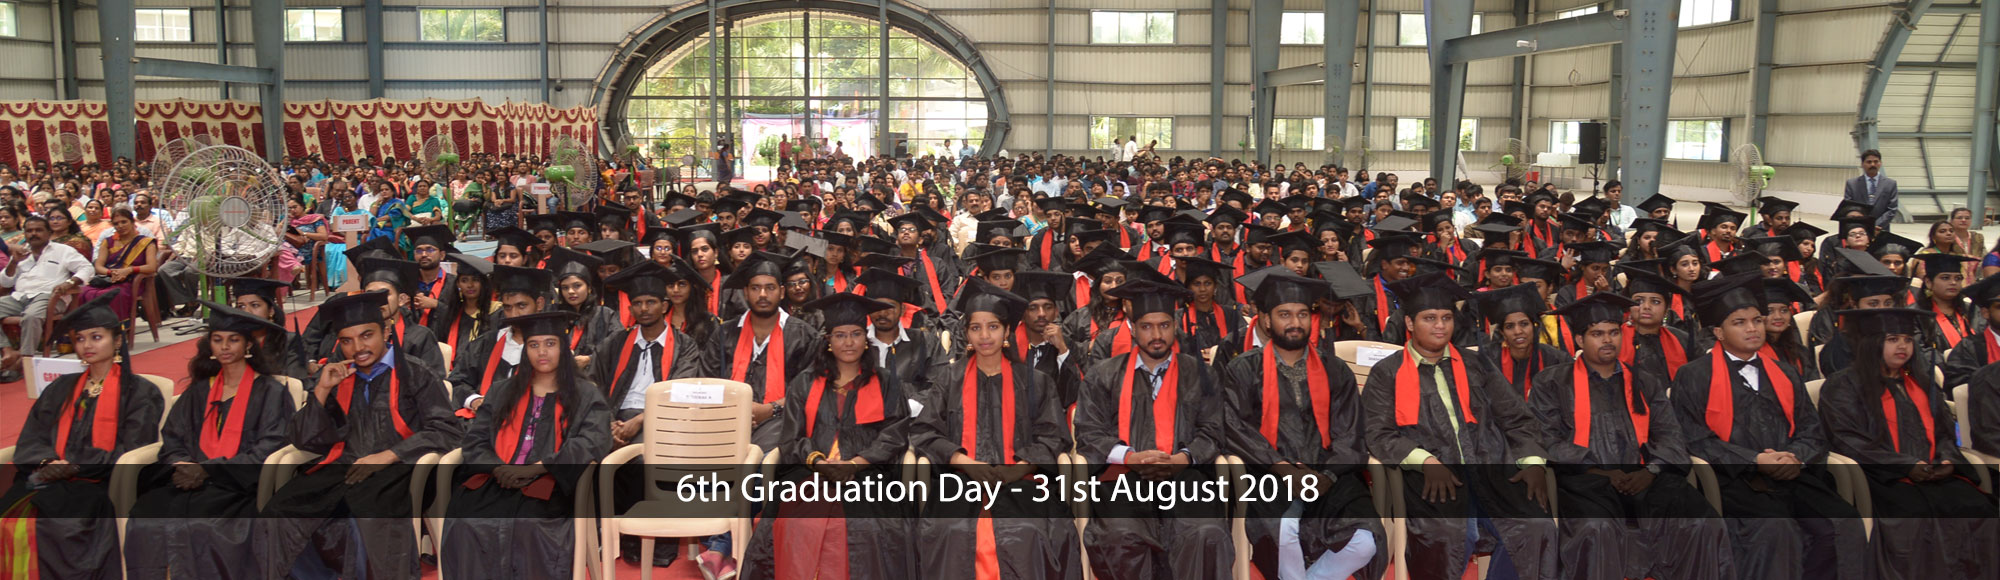 6th-Graduation-Day-31st-August-2018-1